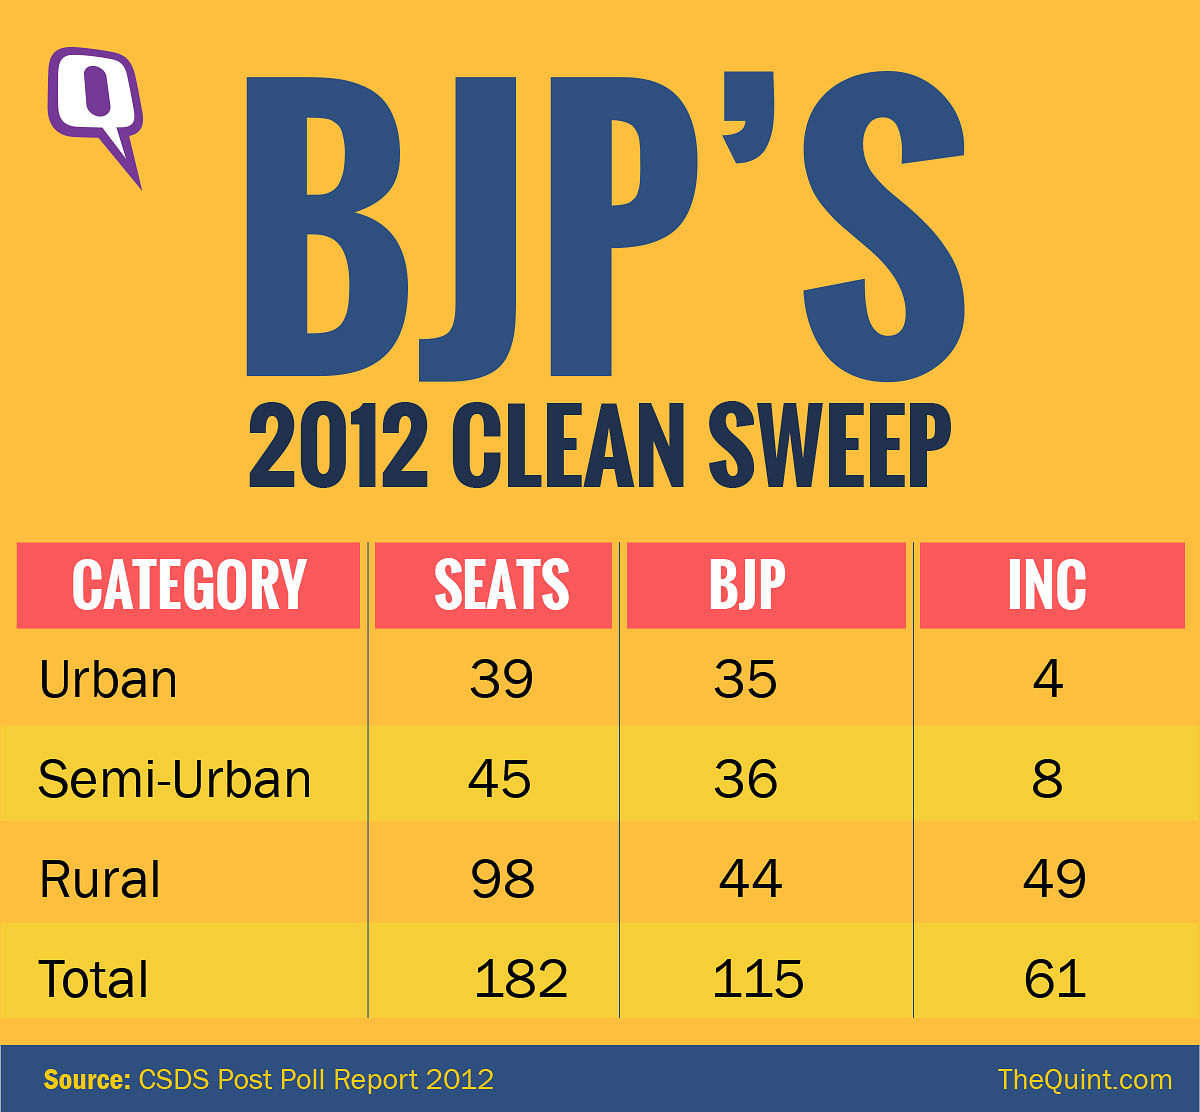 Source: CSDS Post Poll Report 2012